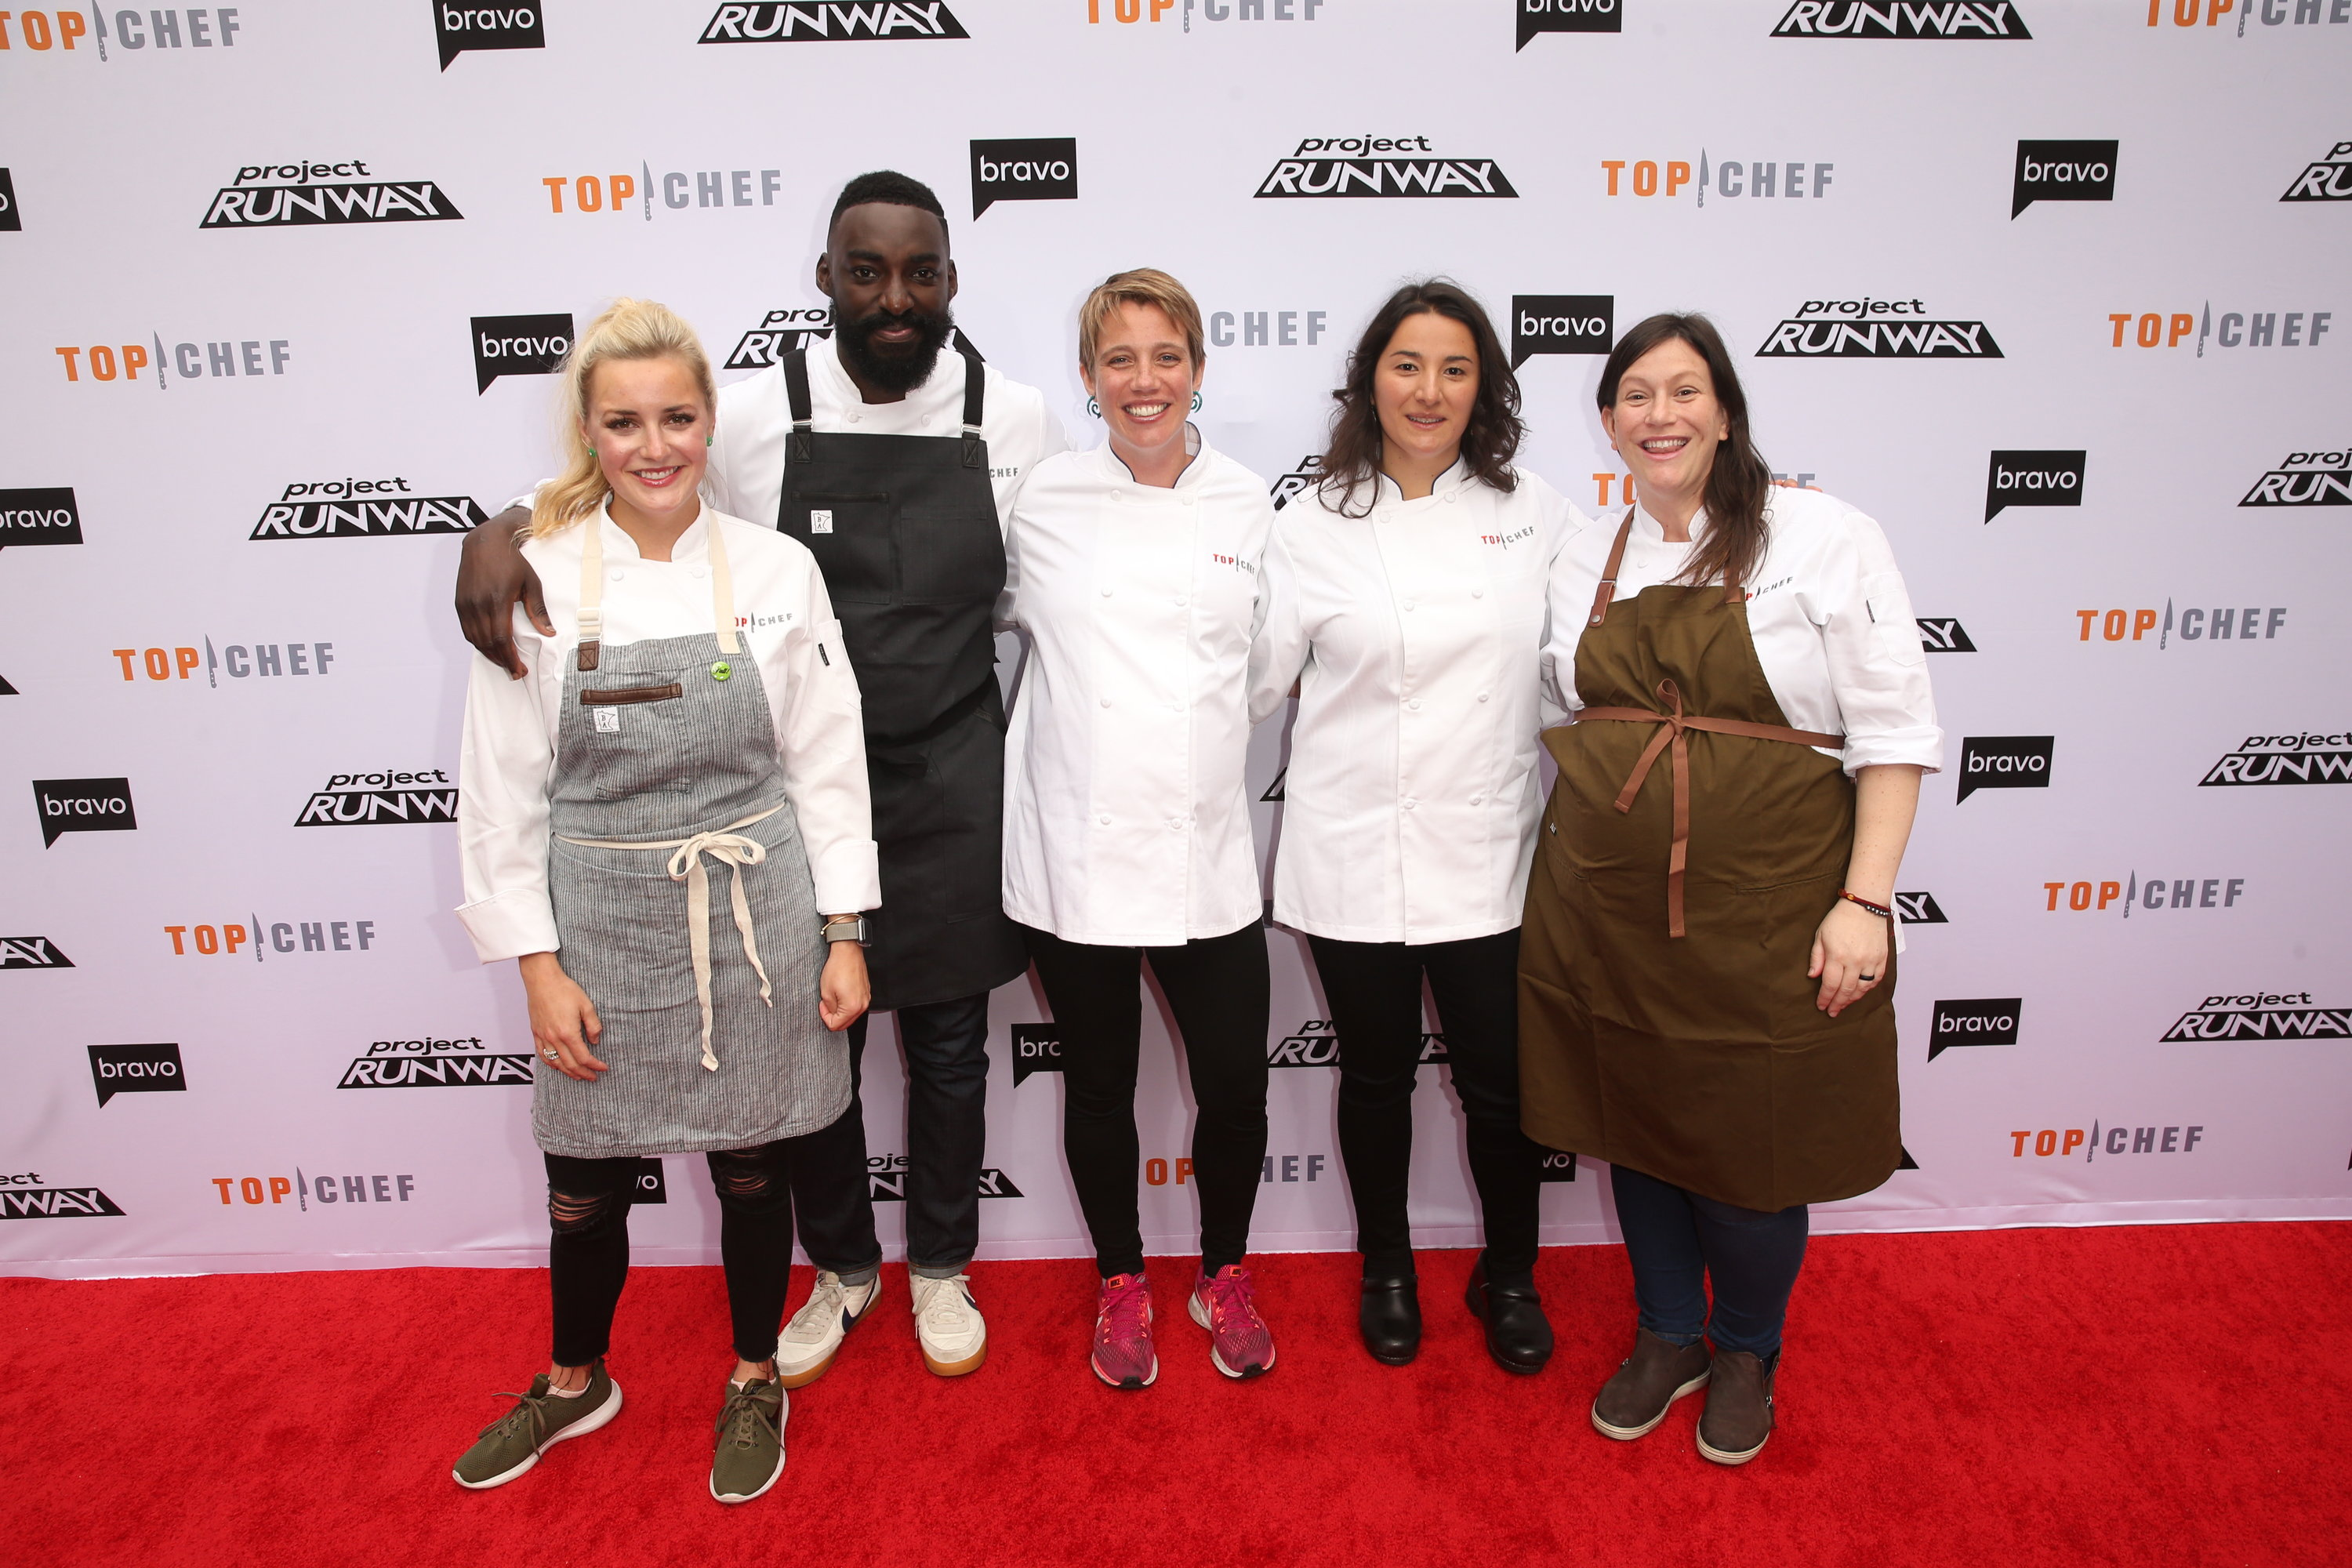 Top Chef Finalists Sara Bradley, Adrienne Wright Are Pregnant